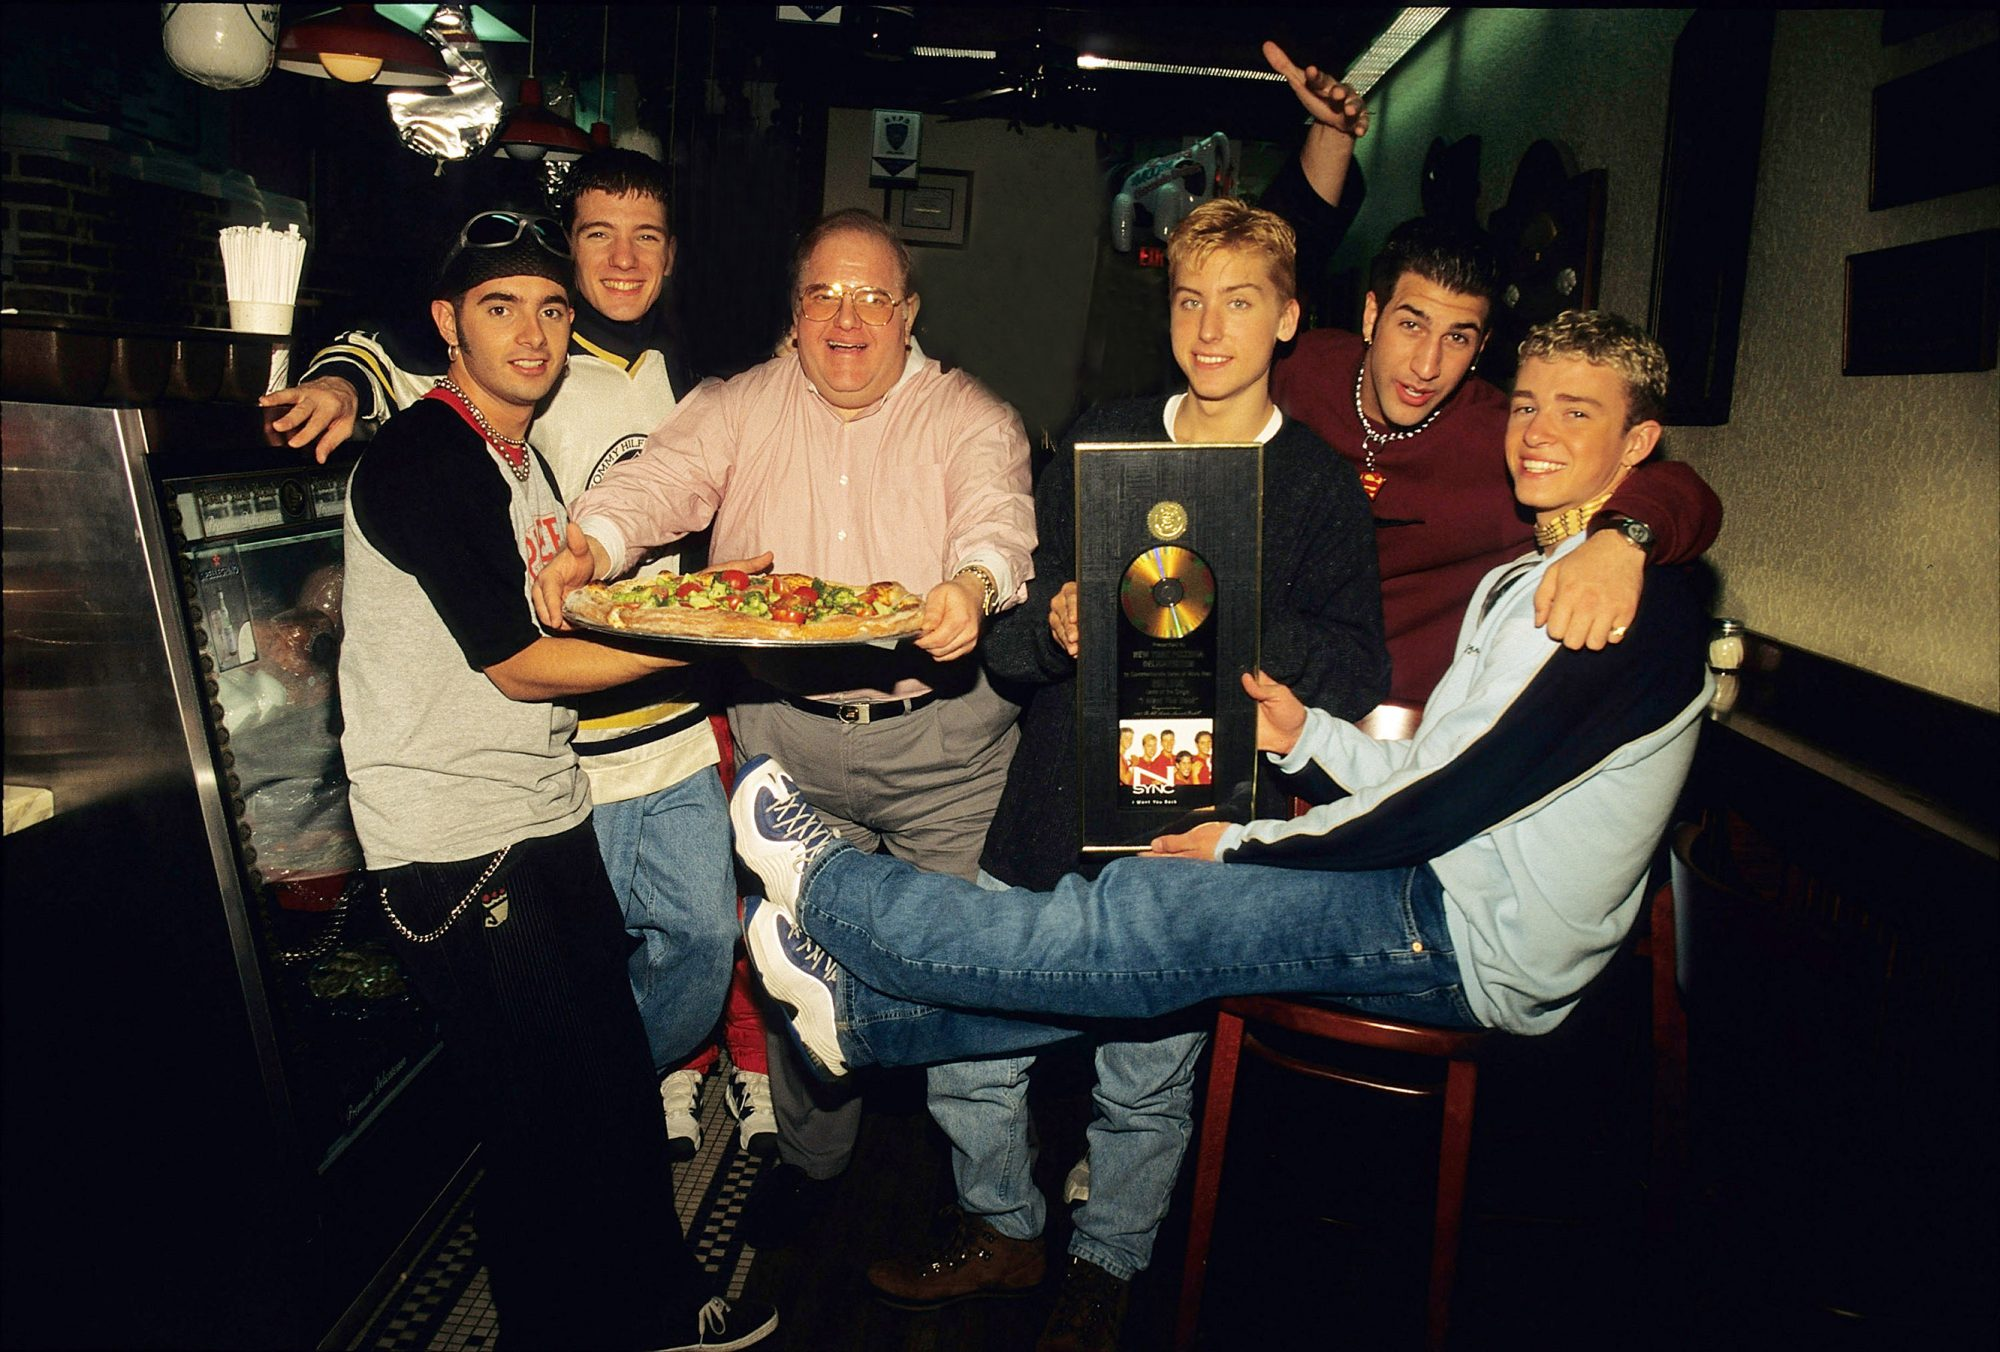 Lou Pearlman with N'Sync - 1996